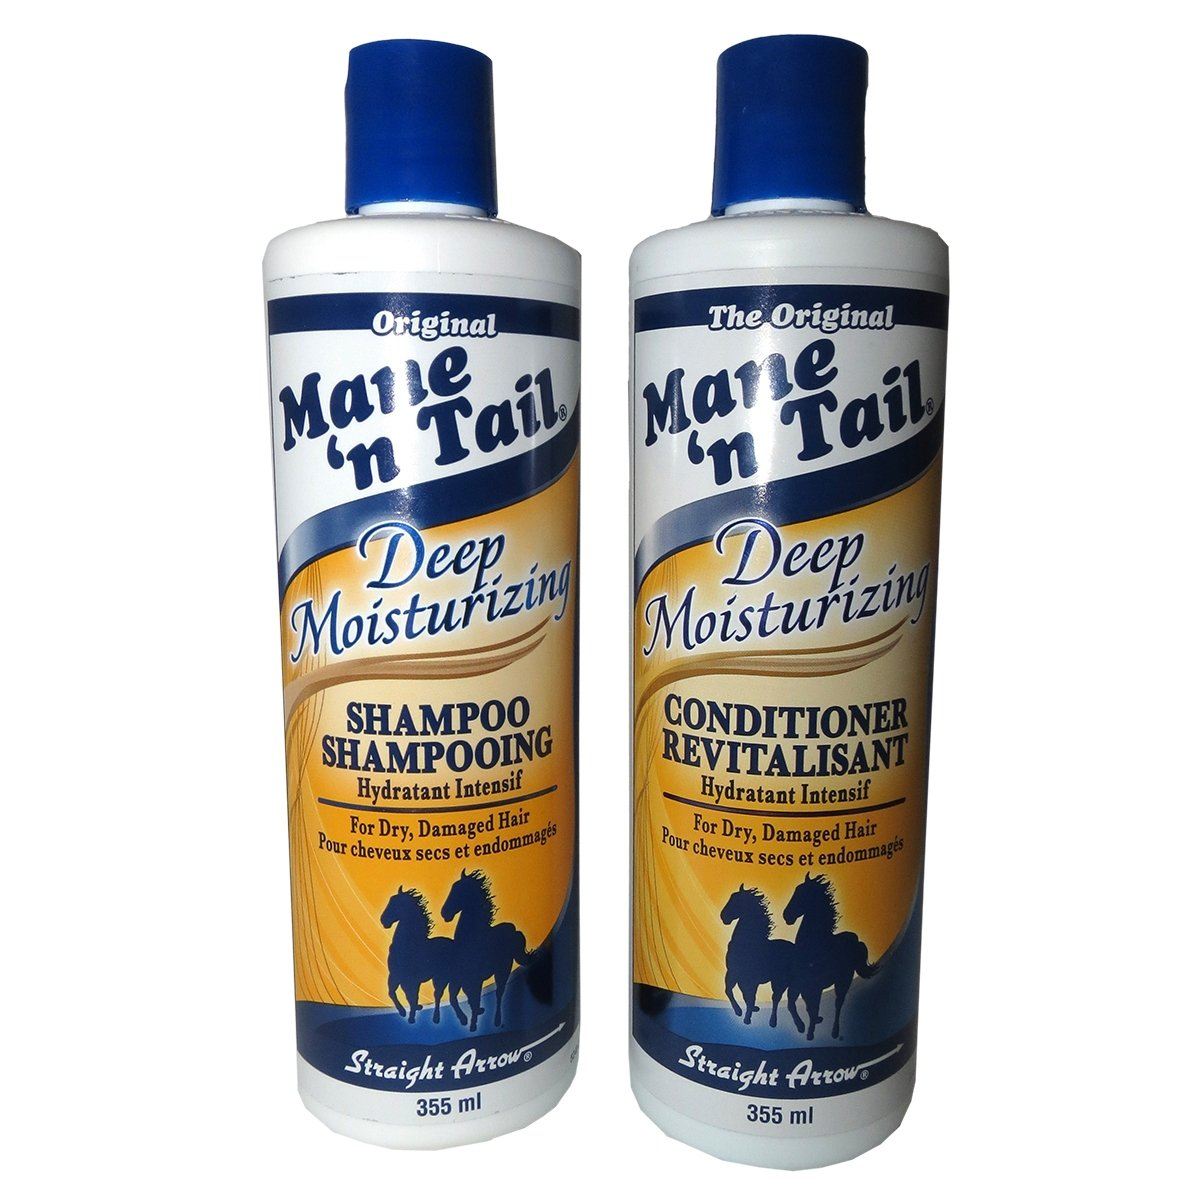 MANE 'N TAIL DEEP MOISTURIZING SHAMPOO & CONDITIONER REVIEW - Beauty Appetite by Jessica Simon